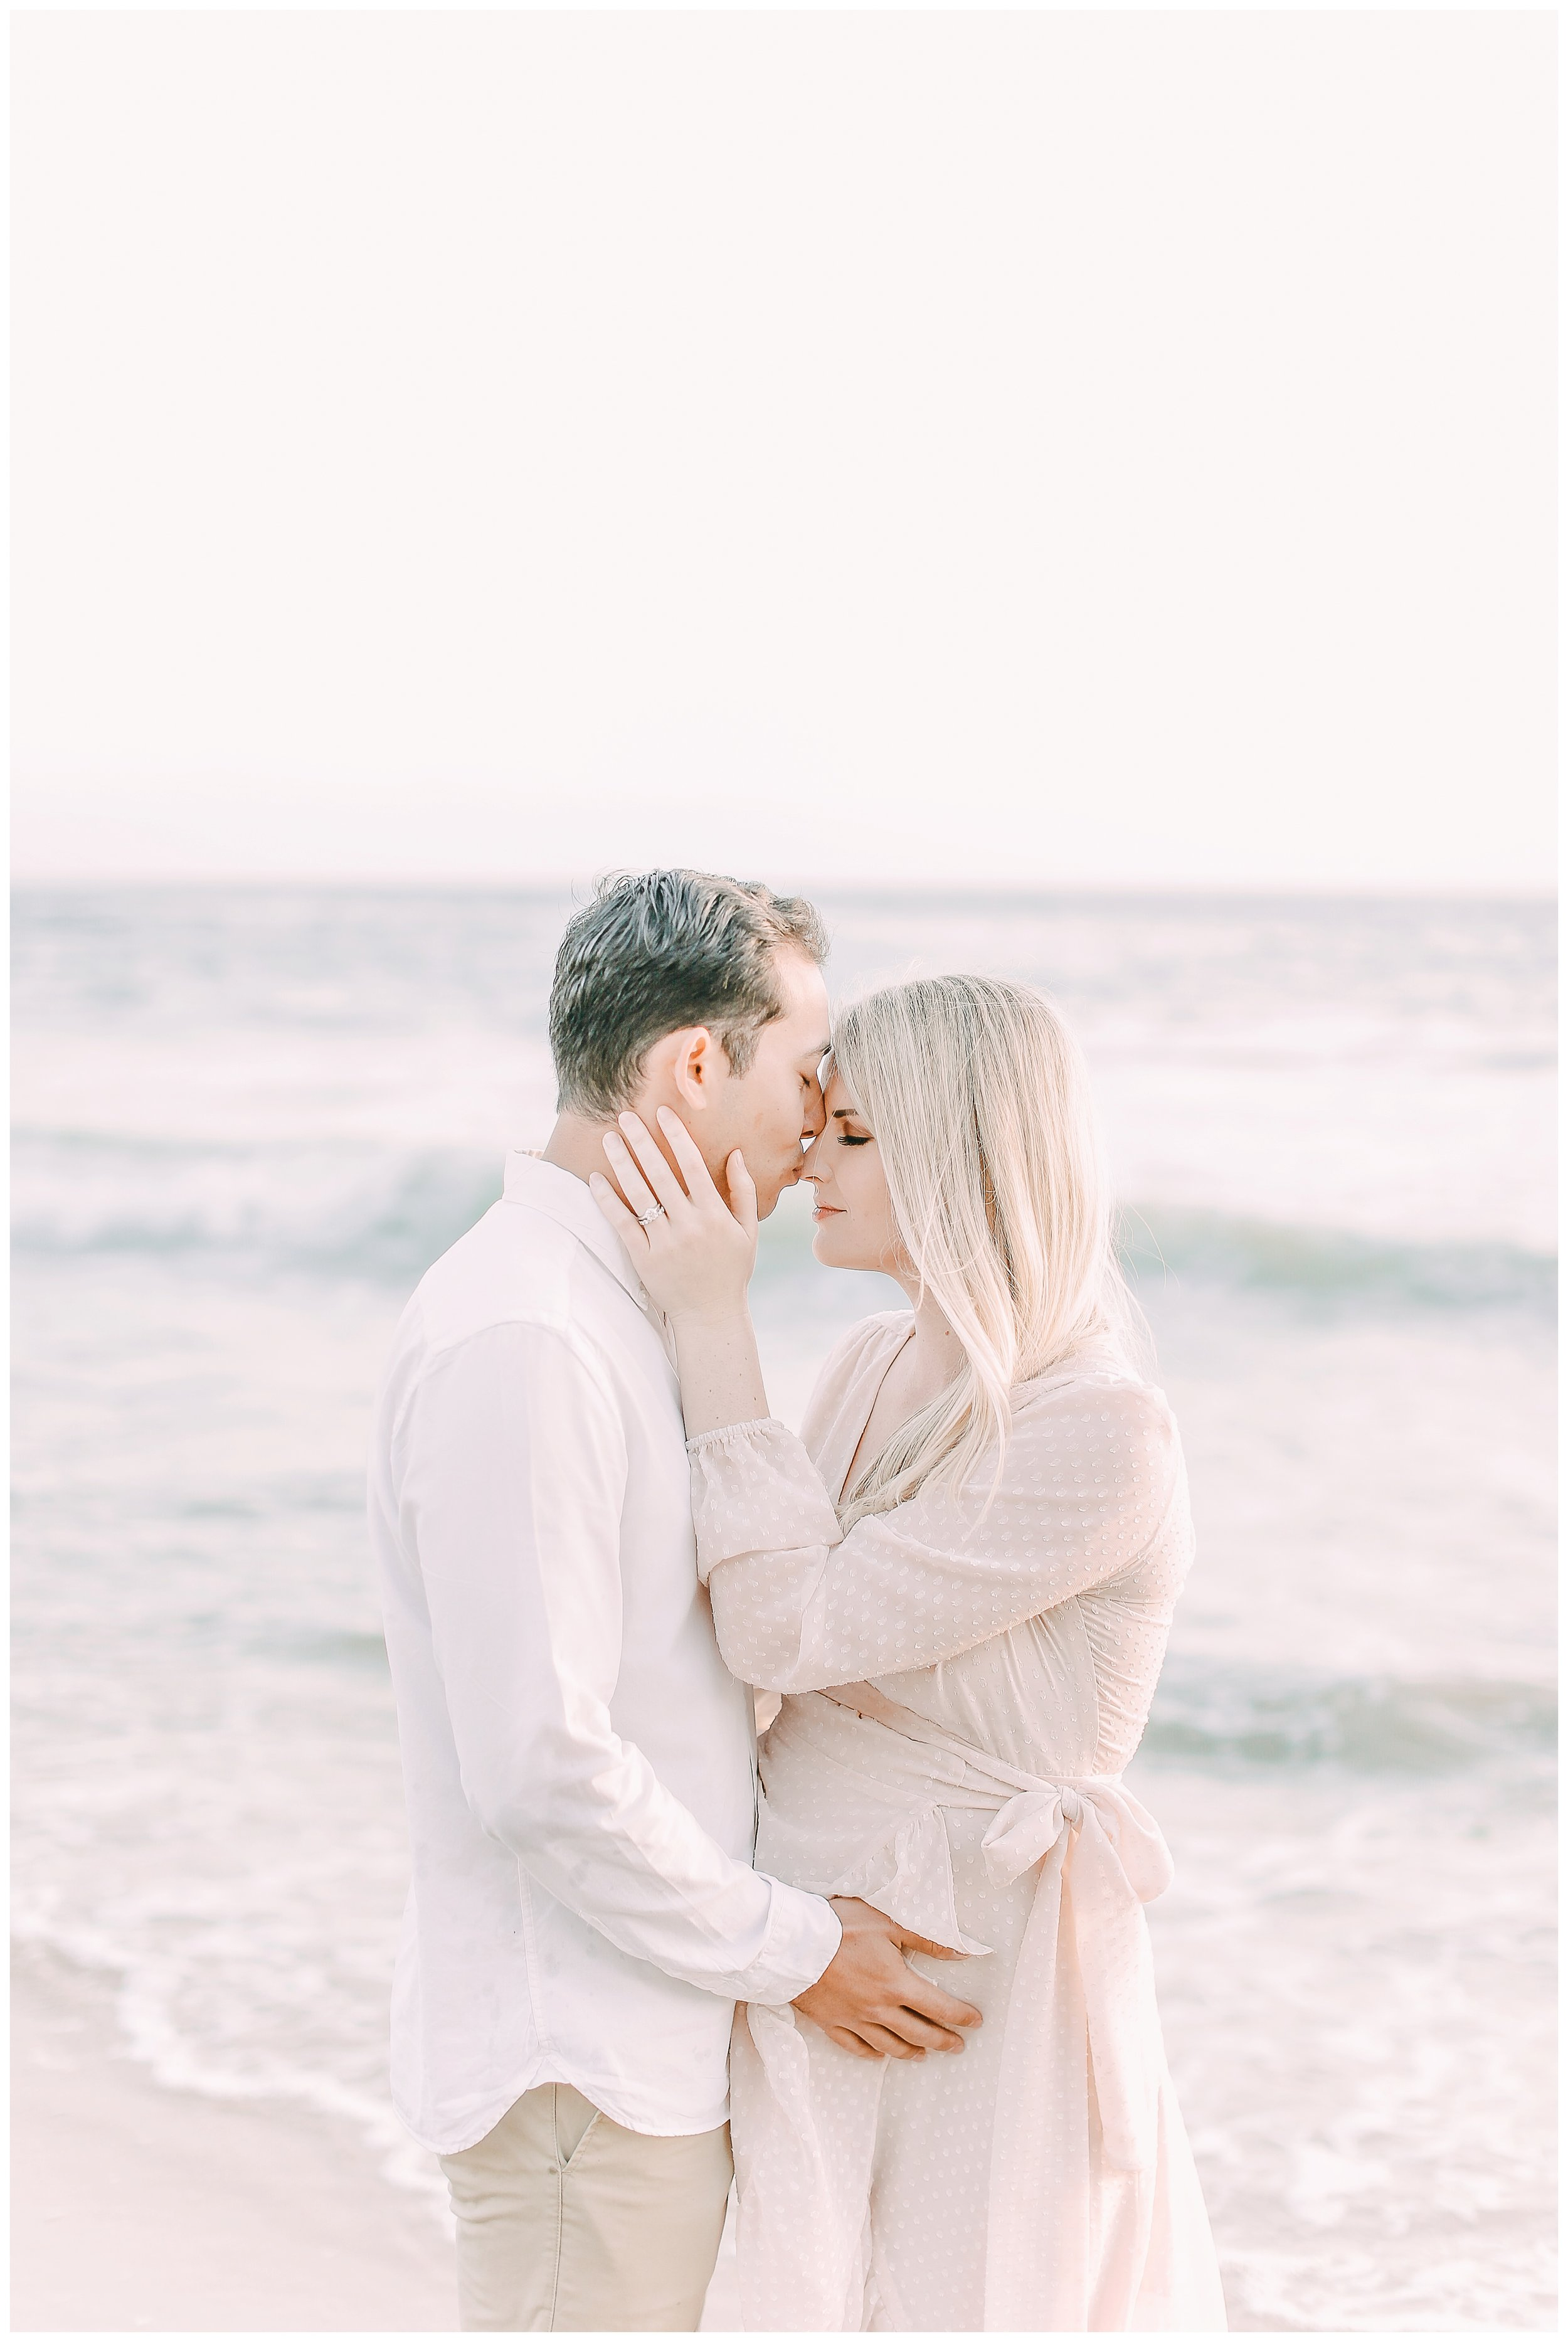 Little_Corona_Beach_Maternity_Session_Orange_county_family_photographer_cori_kleckner_photography_laguna_beach_family_session_0724.jpg